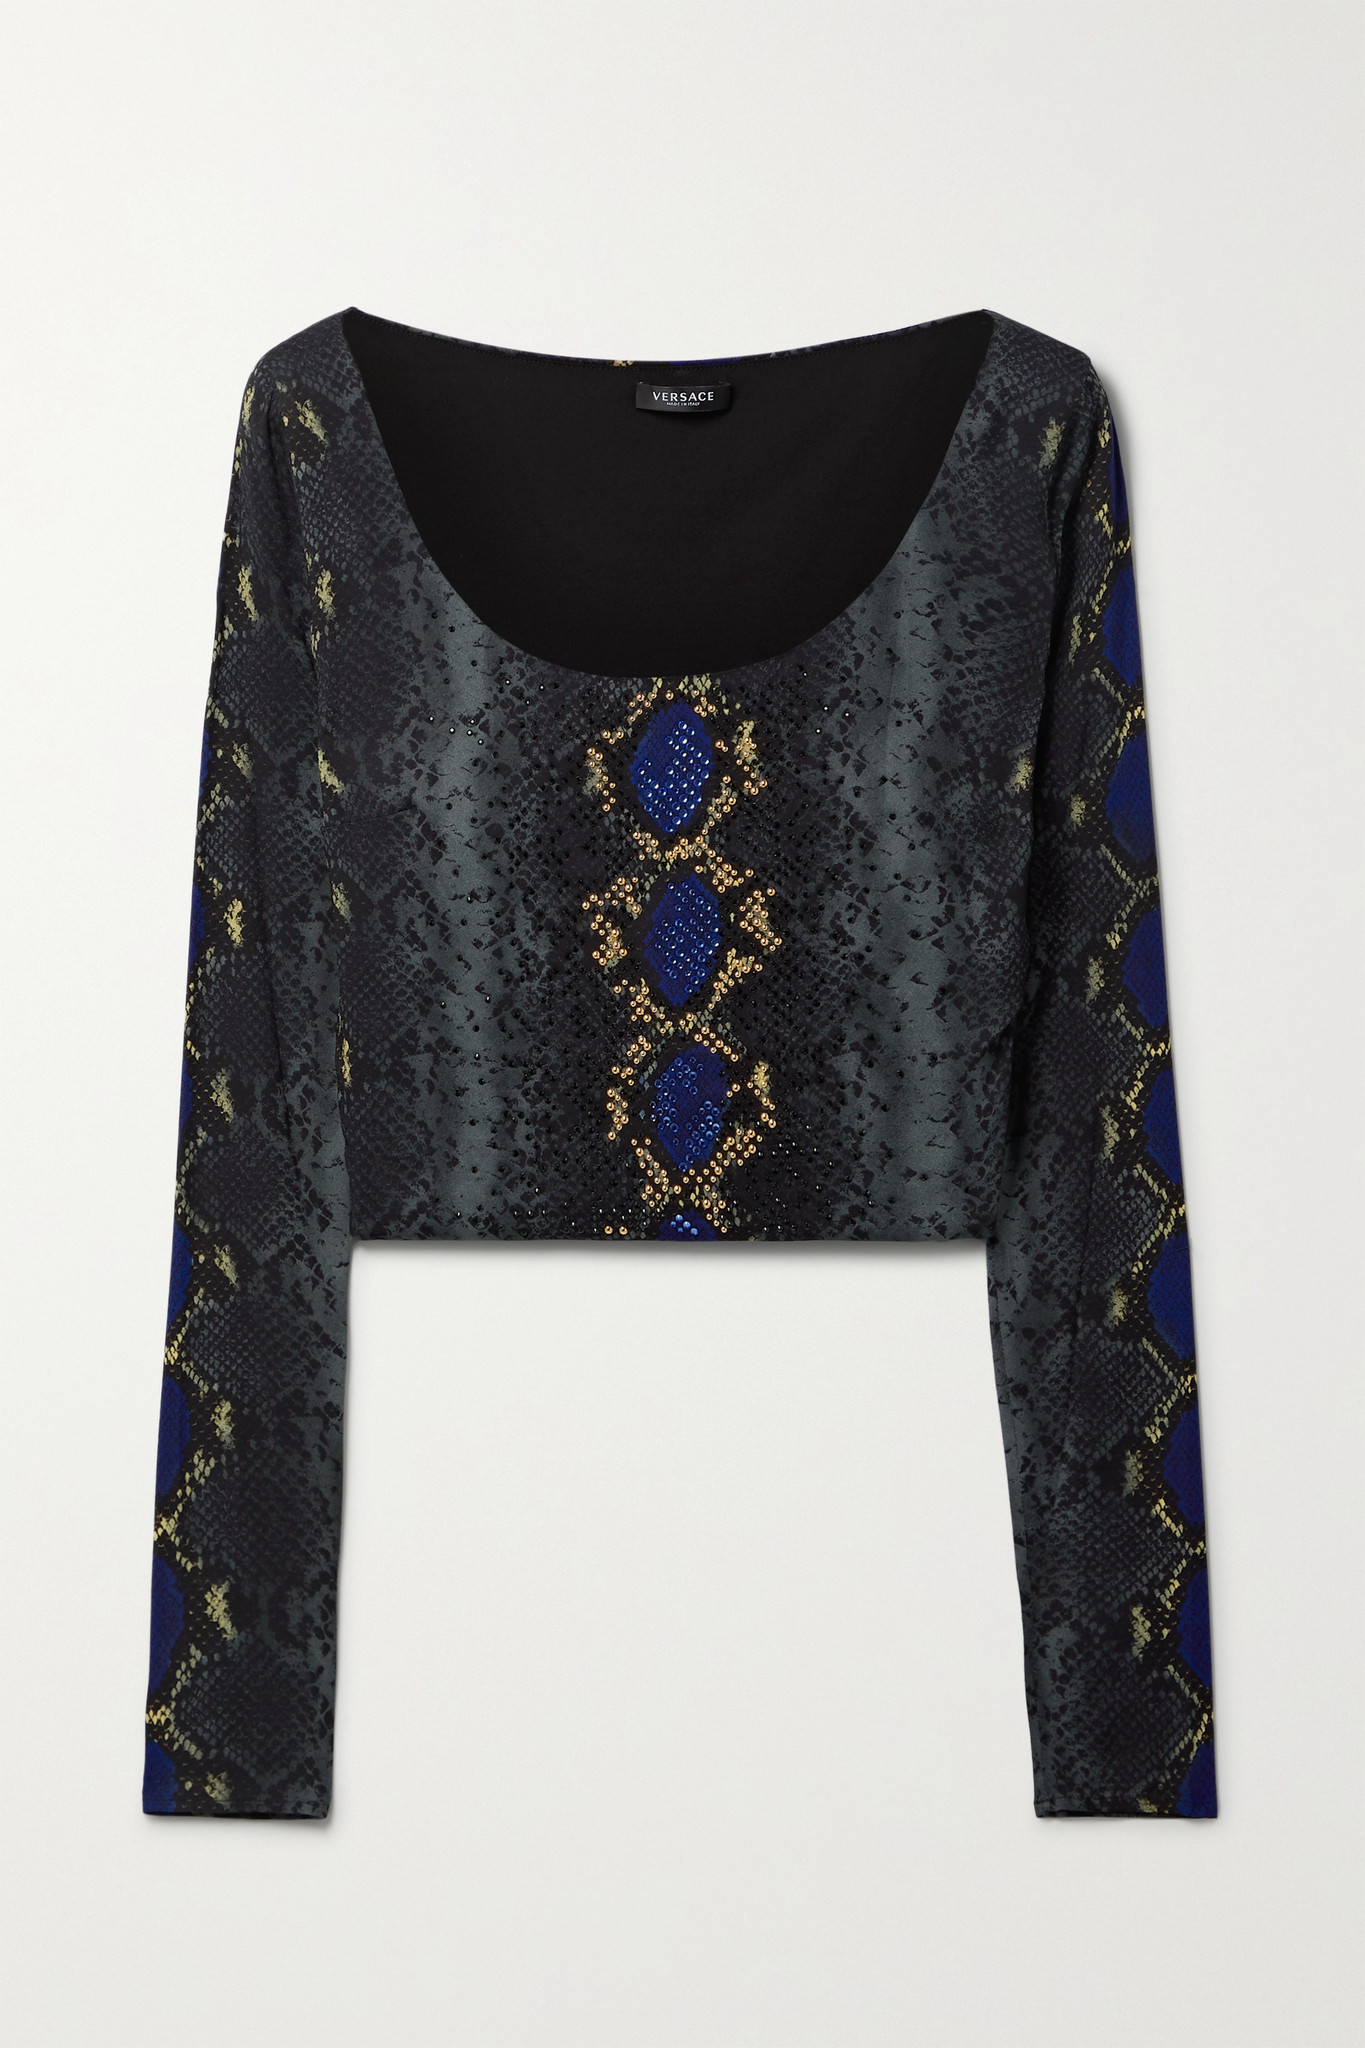 VERSACE - Cropped Embellished Snake-print Stretch-jersey Top - Blue - IT38